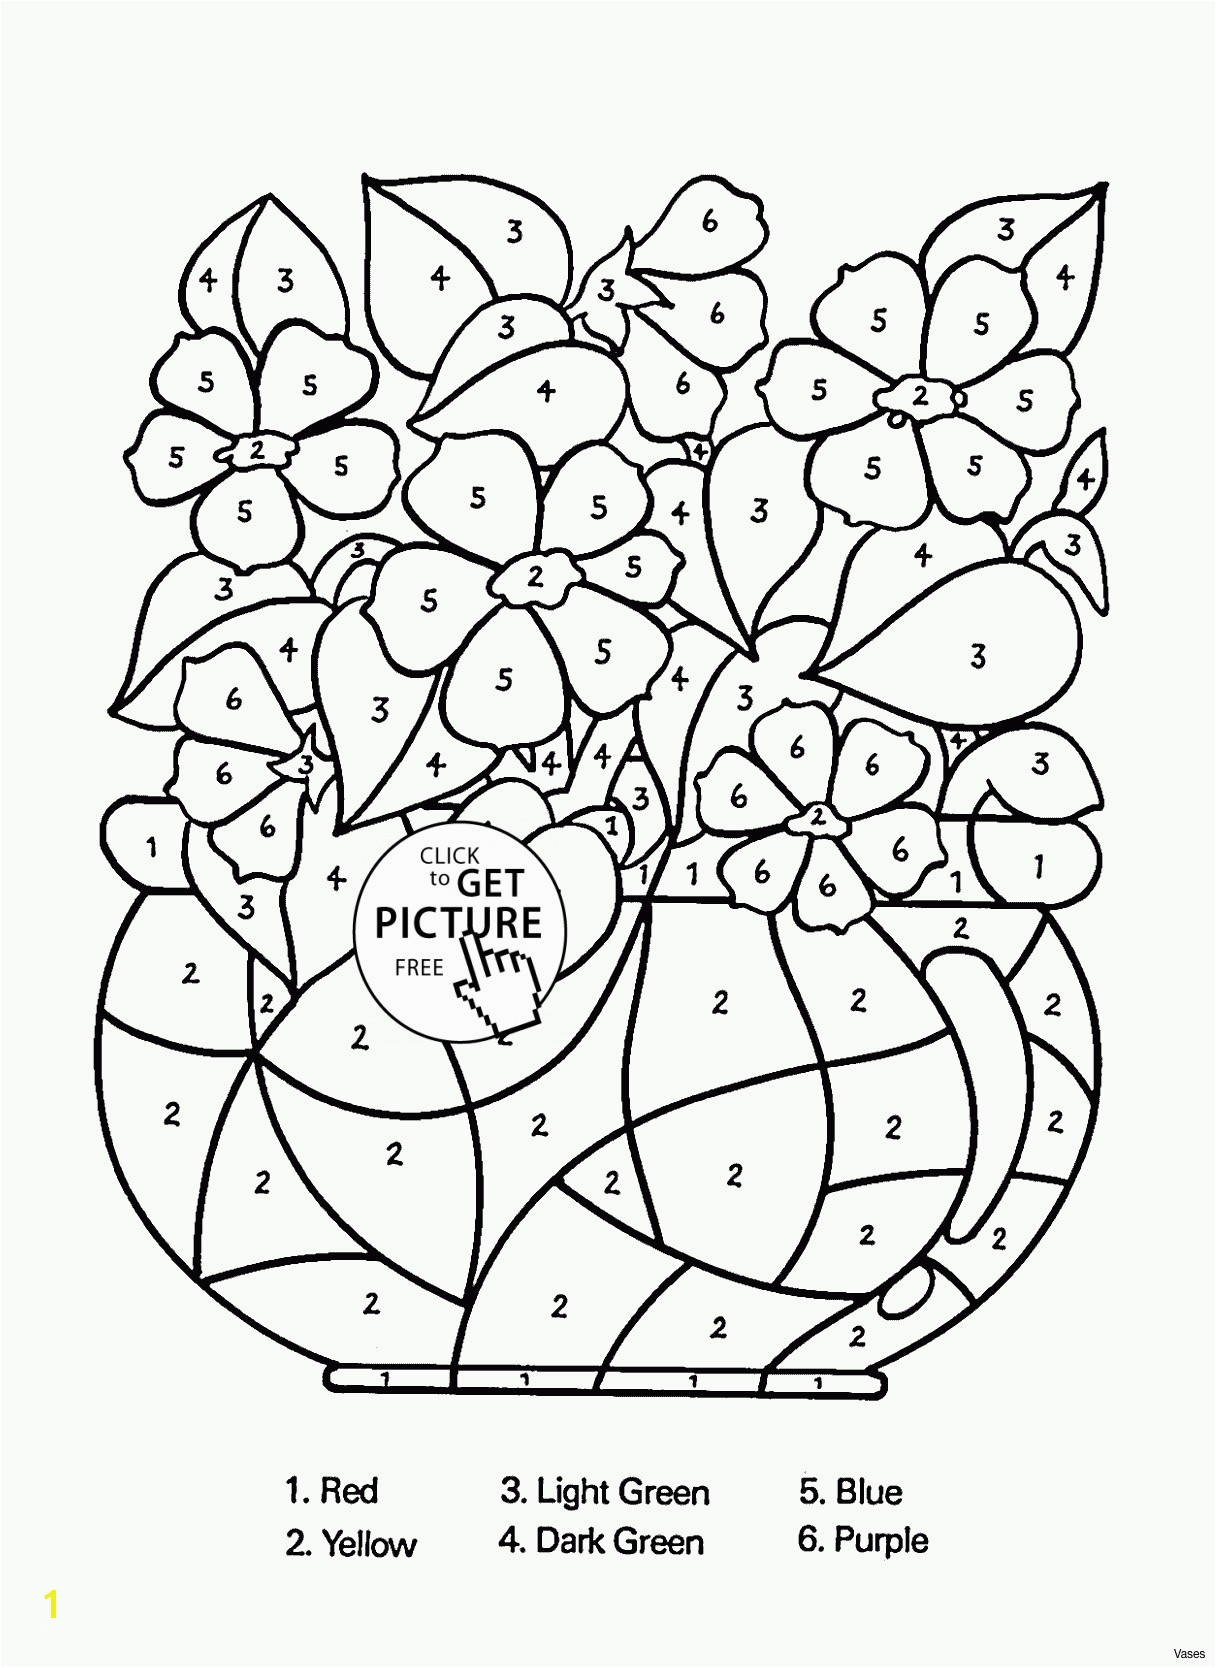 Coloring Book Hat Luxury Line Coloring Book Lovely Coloring Pages Line New Line Coloring 0d